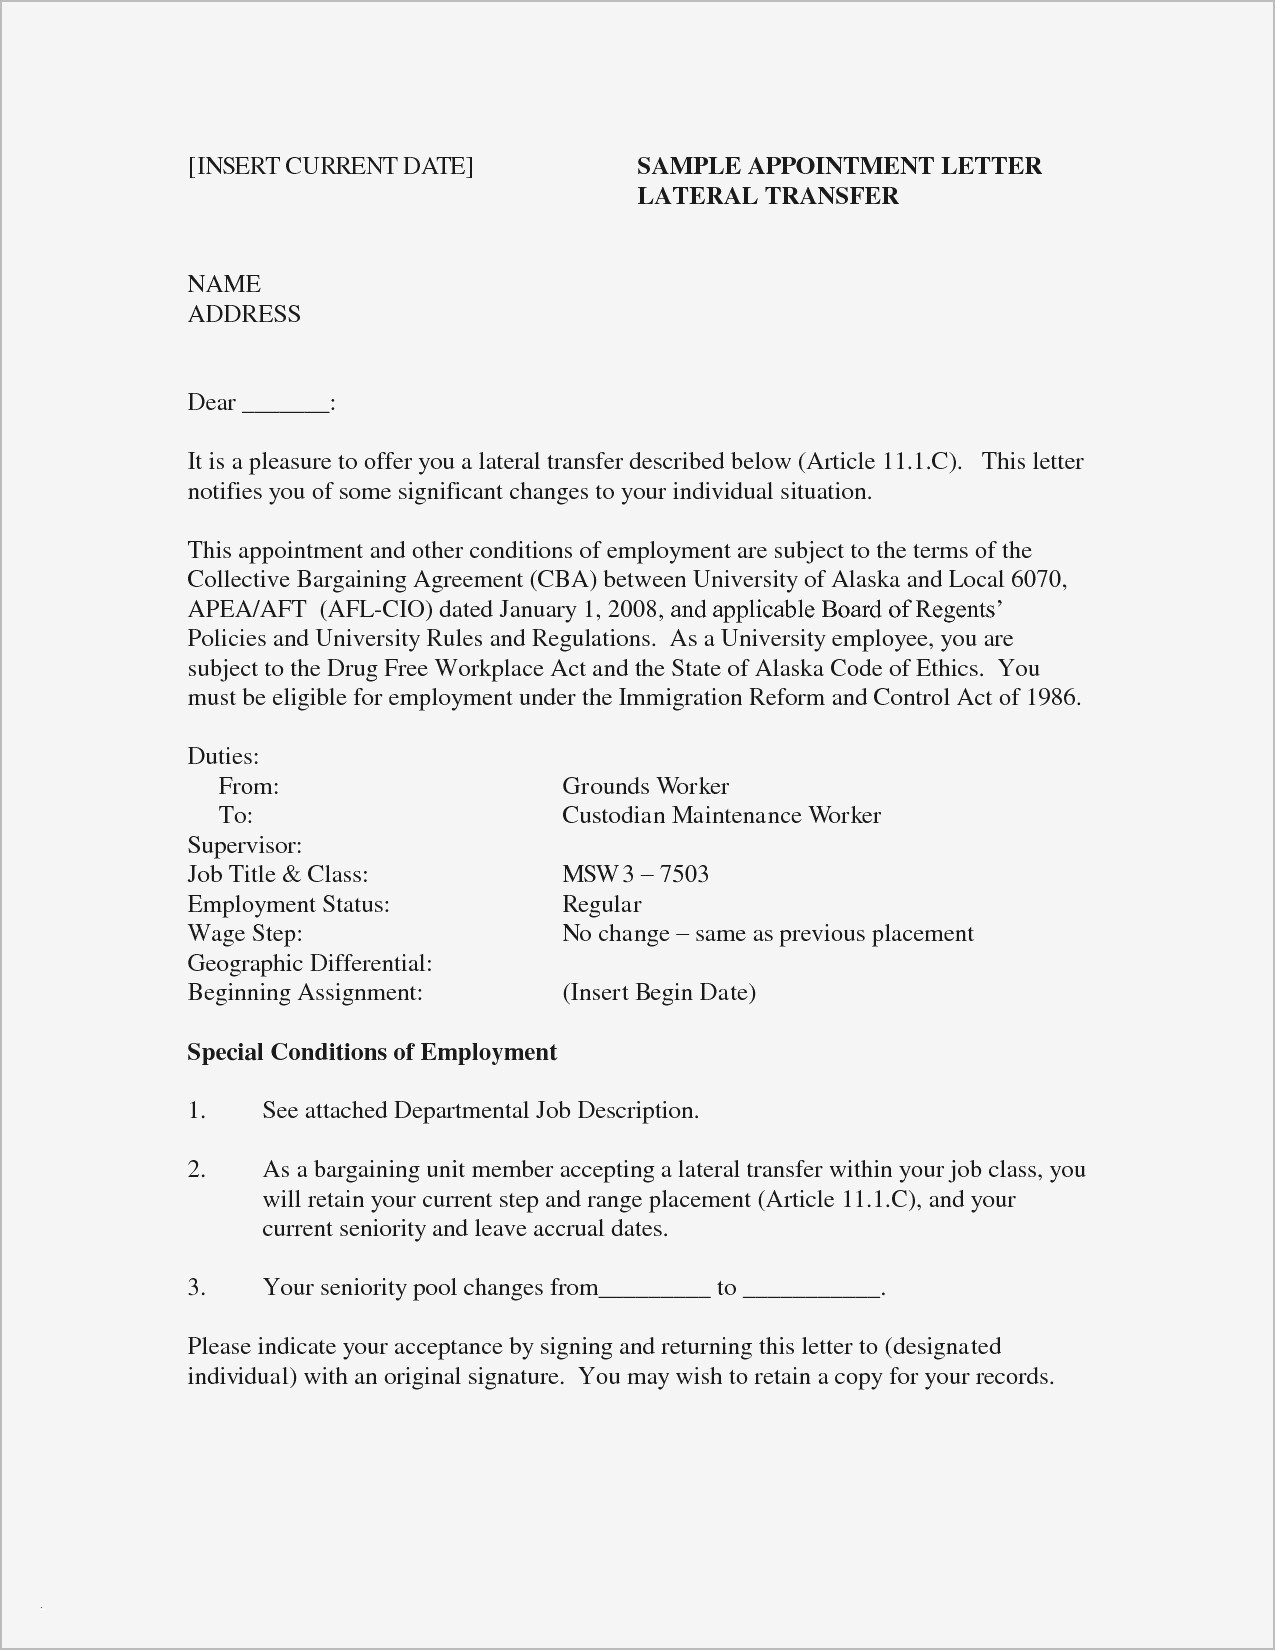 Employment Verification Letter Template Word - Educational Resume Template Legalsocialmobilitypartnership